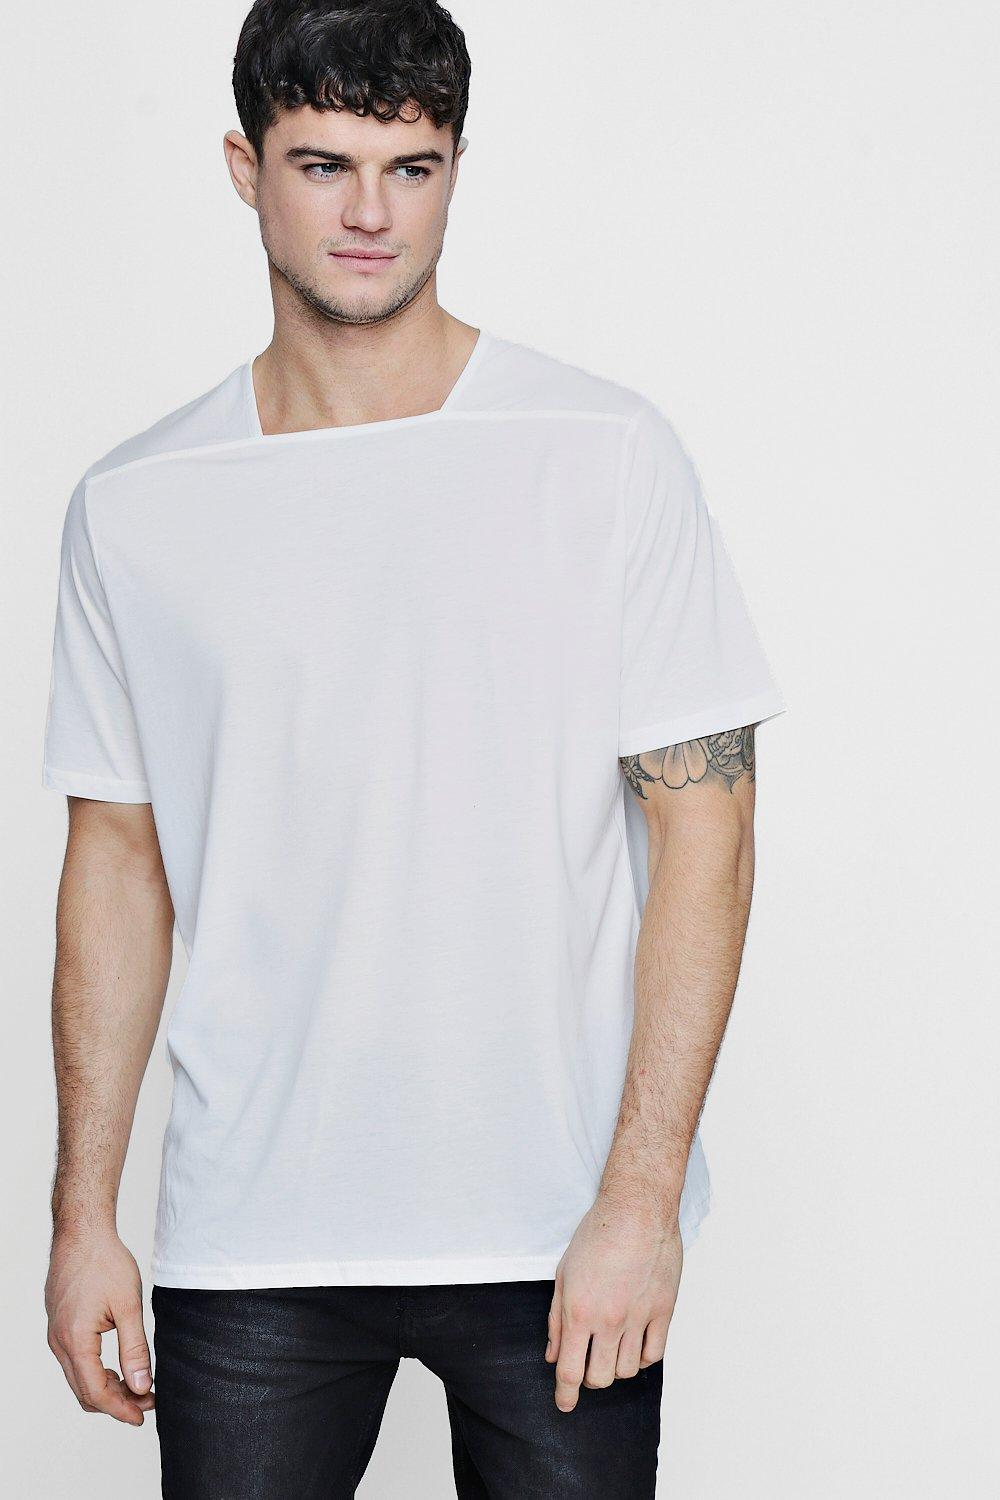 82792b1a3 Mens White Collarless Square Neck T-Shirt. Hover to zoom